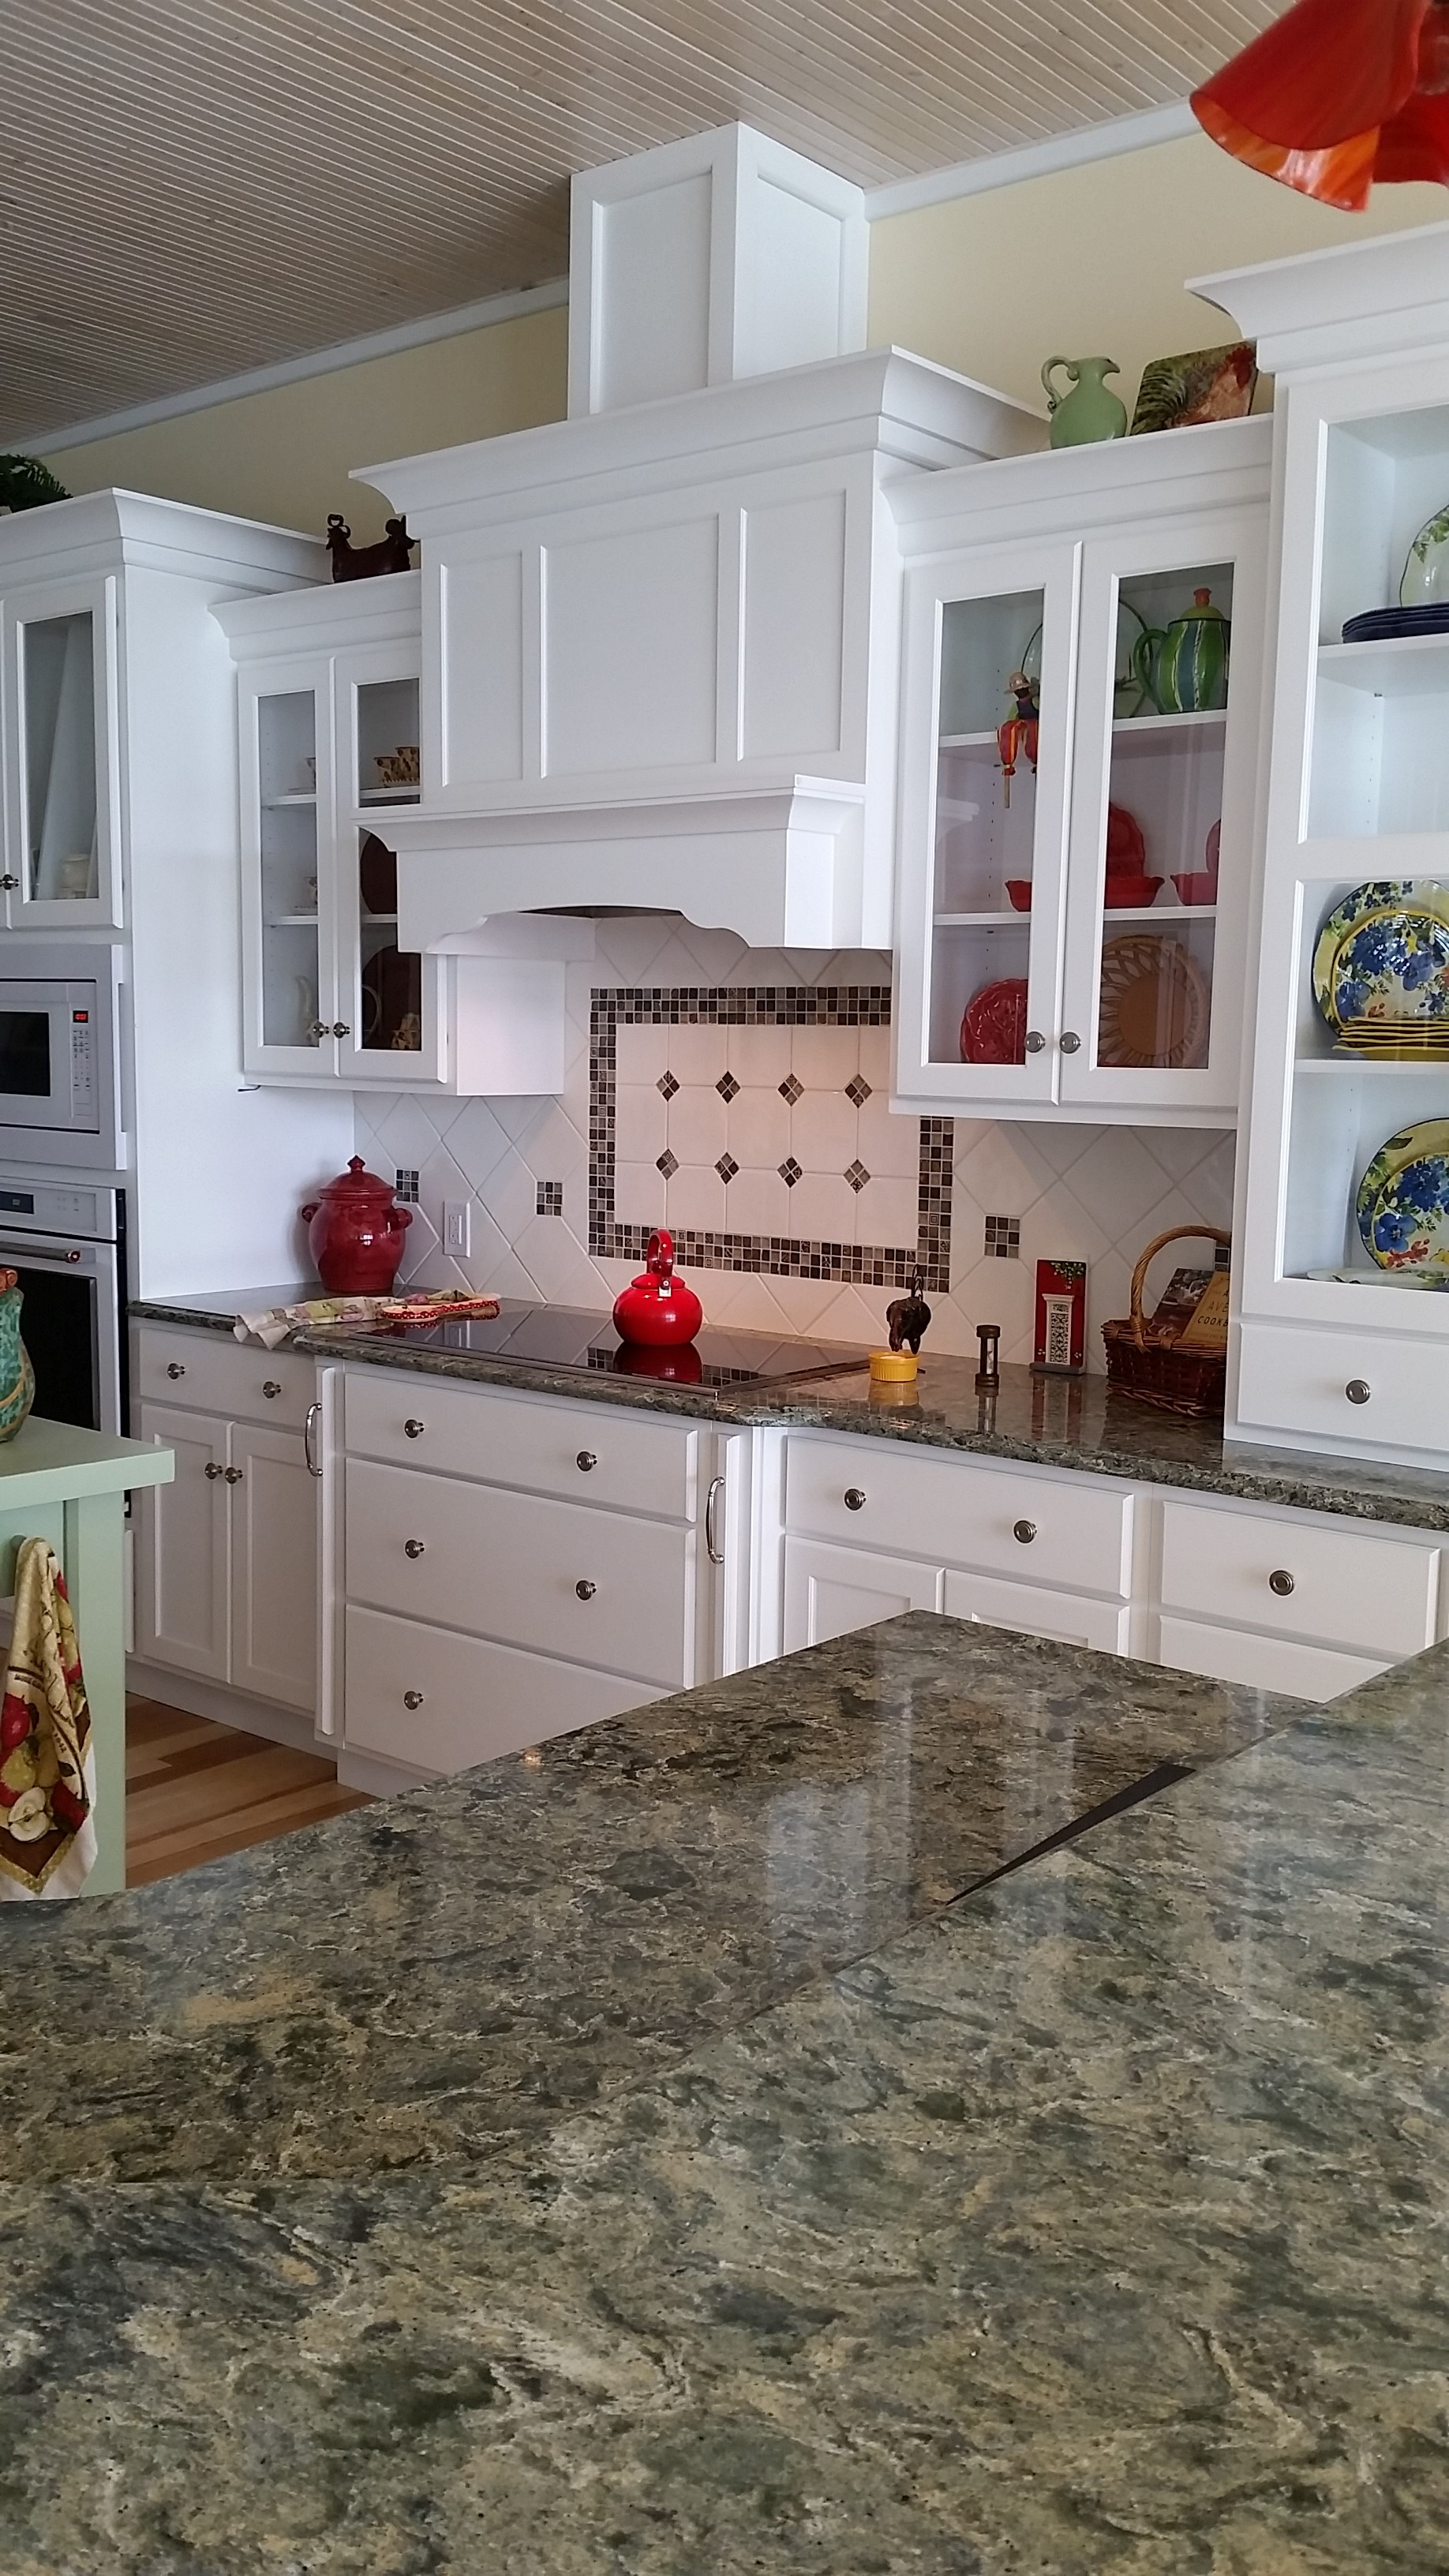 Cottage style kitchen by Kalamazoo Custom Kitchens and Baths, Kalamazoo, MI